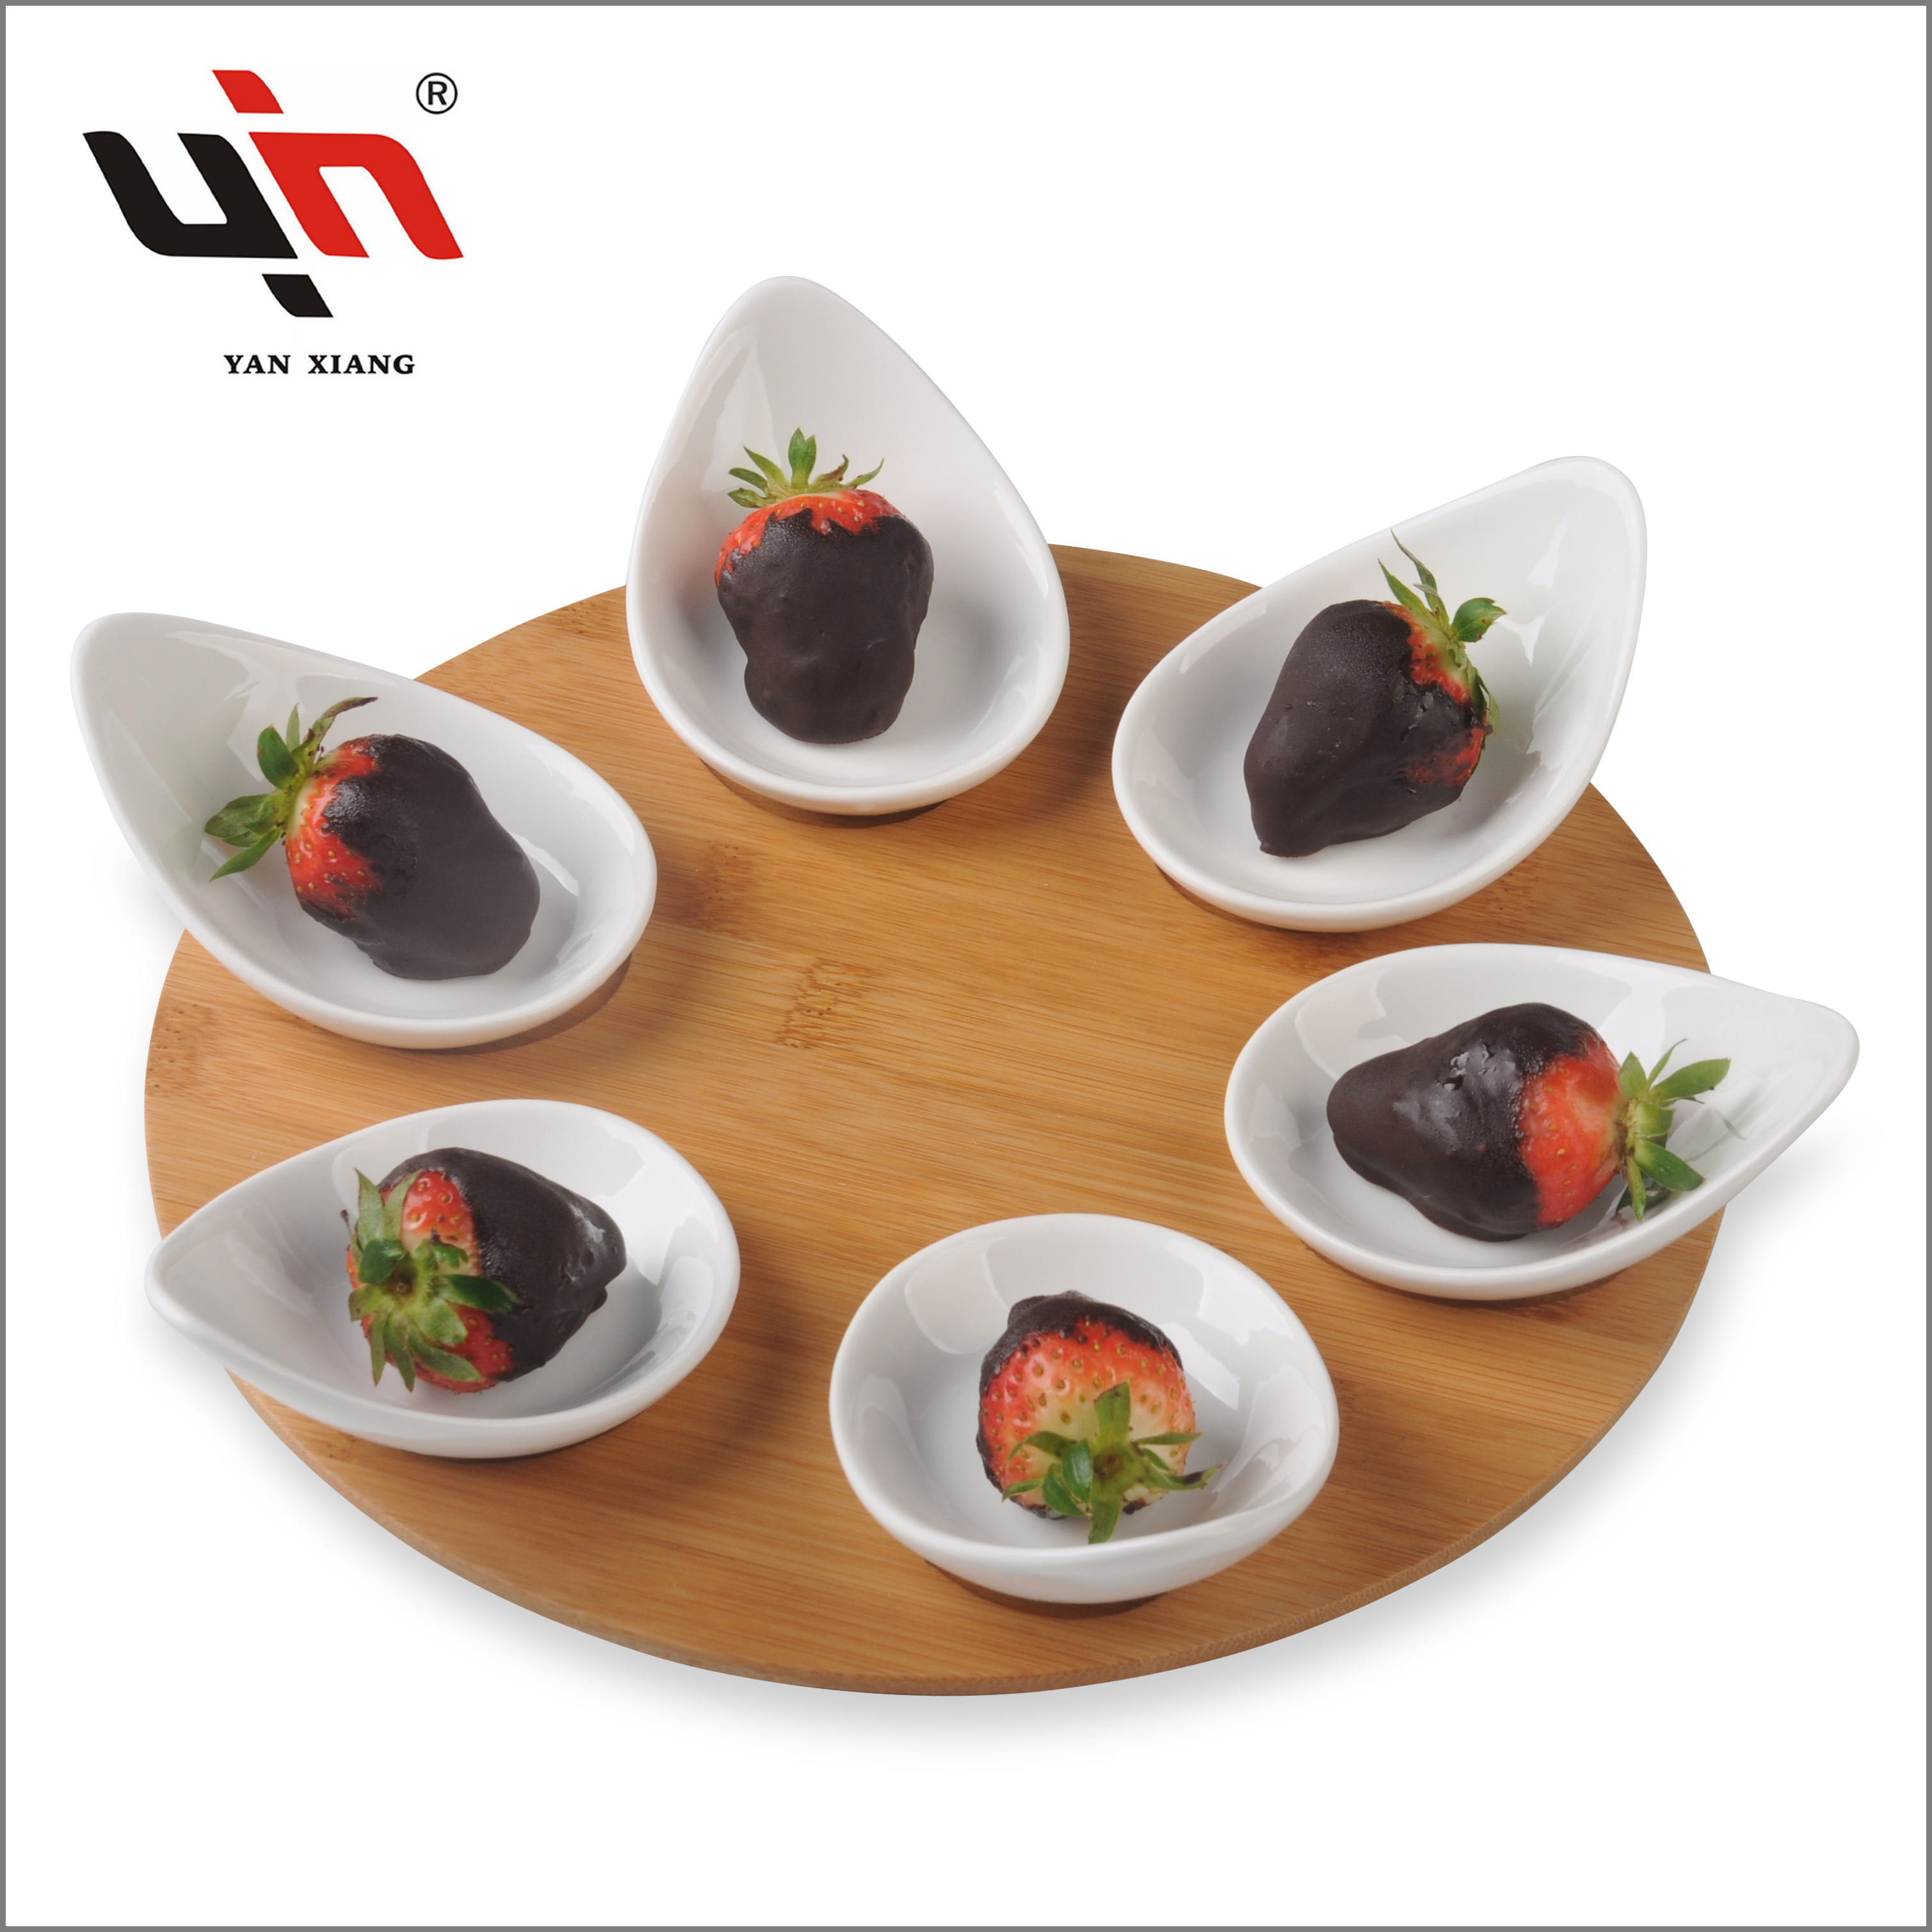 2020 Promotion Bamboo plates,Wholesale ceramic plate set